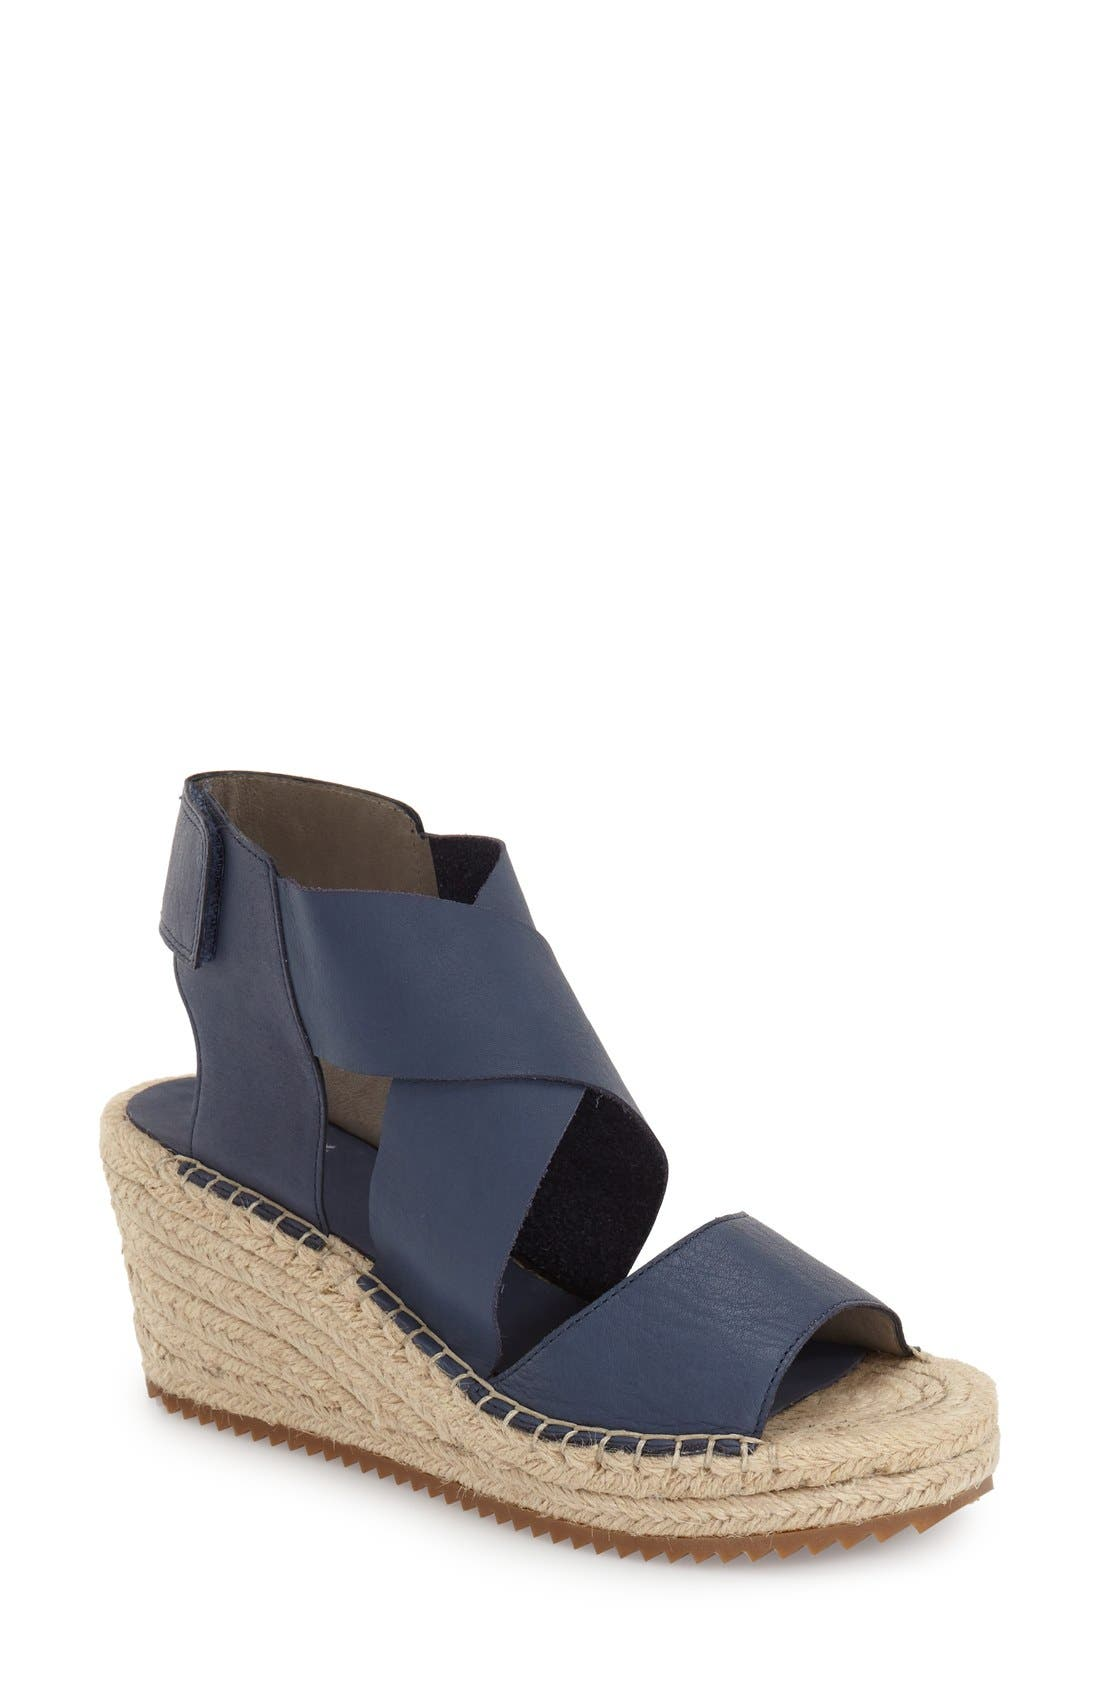 WILLOW PERFORATED NUBUCK ESPADRILLE SANDAL